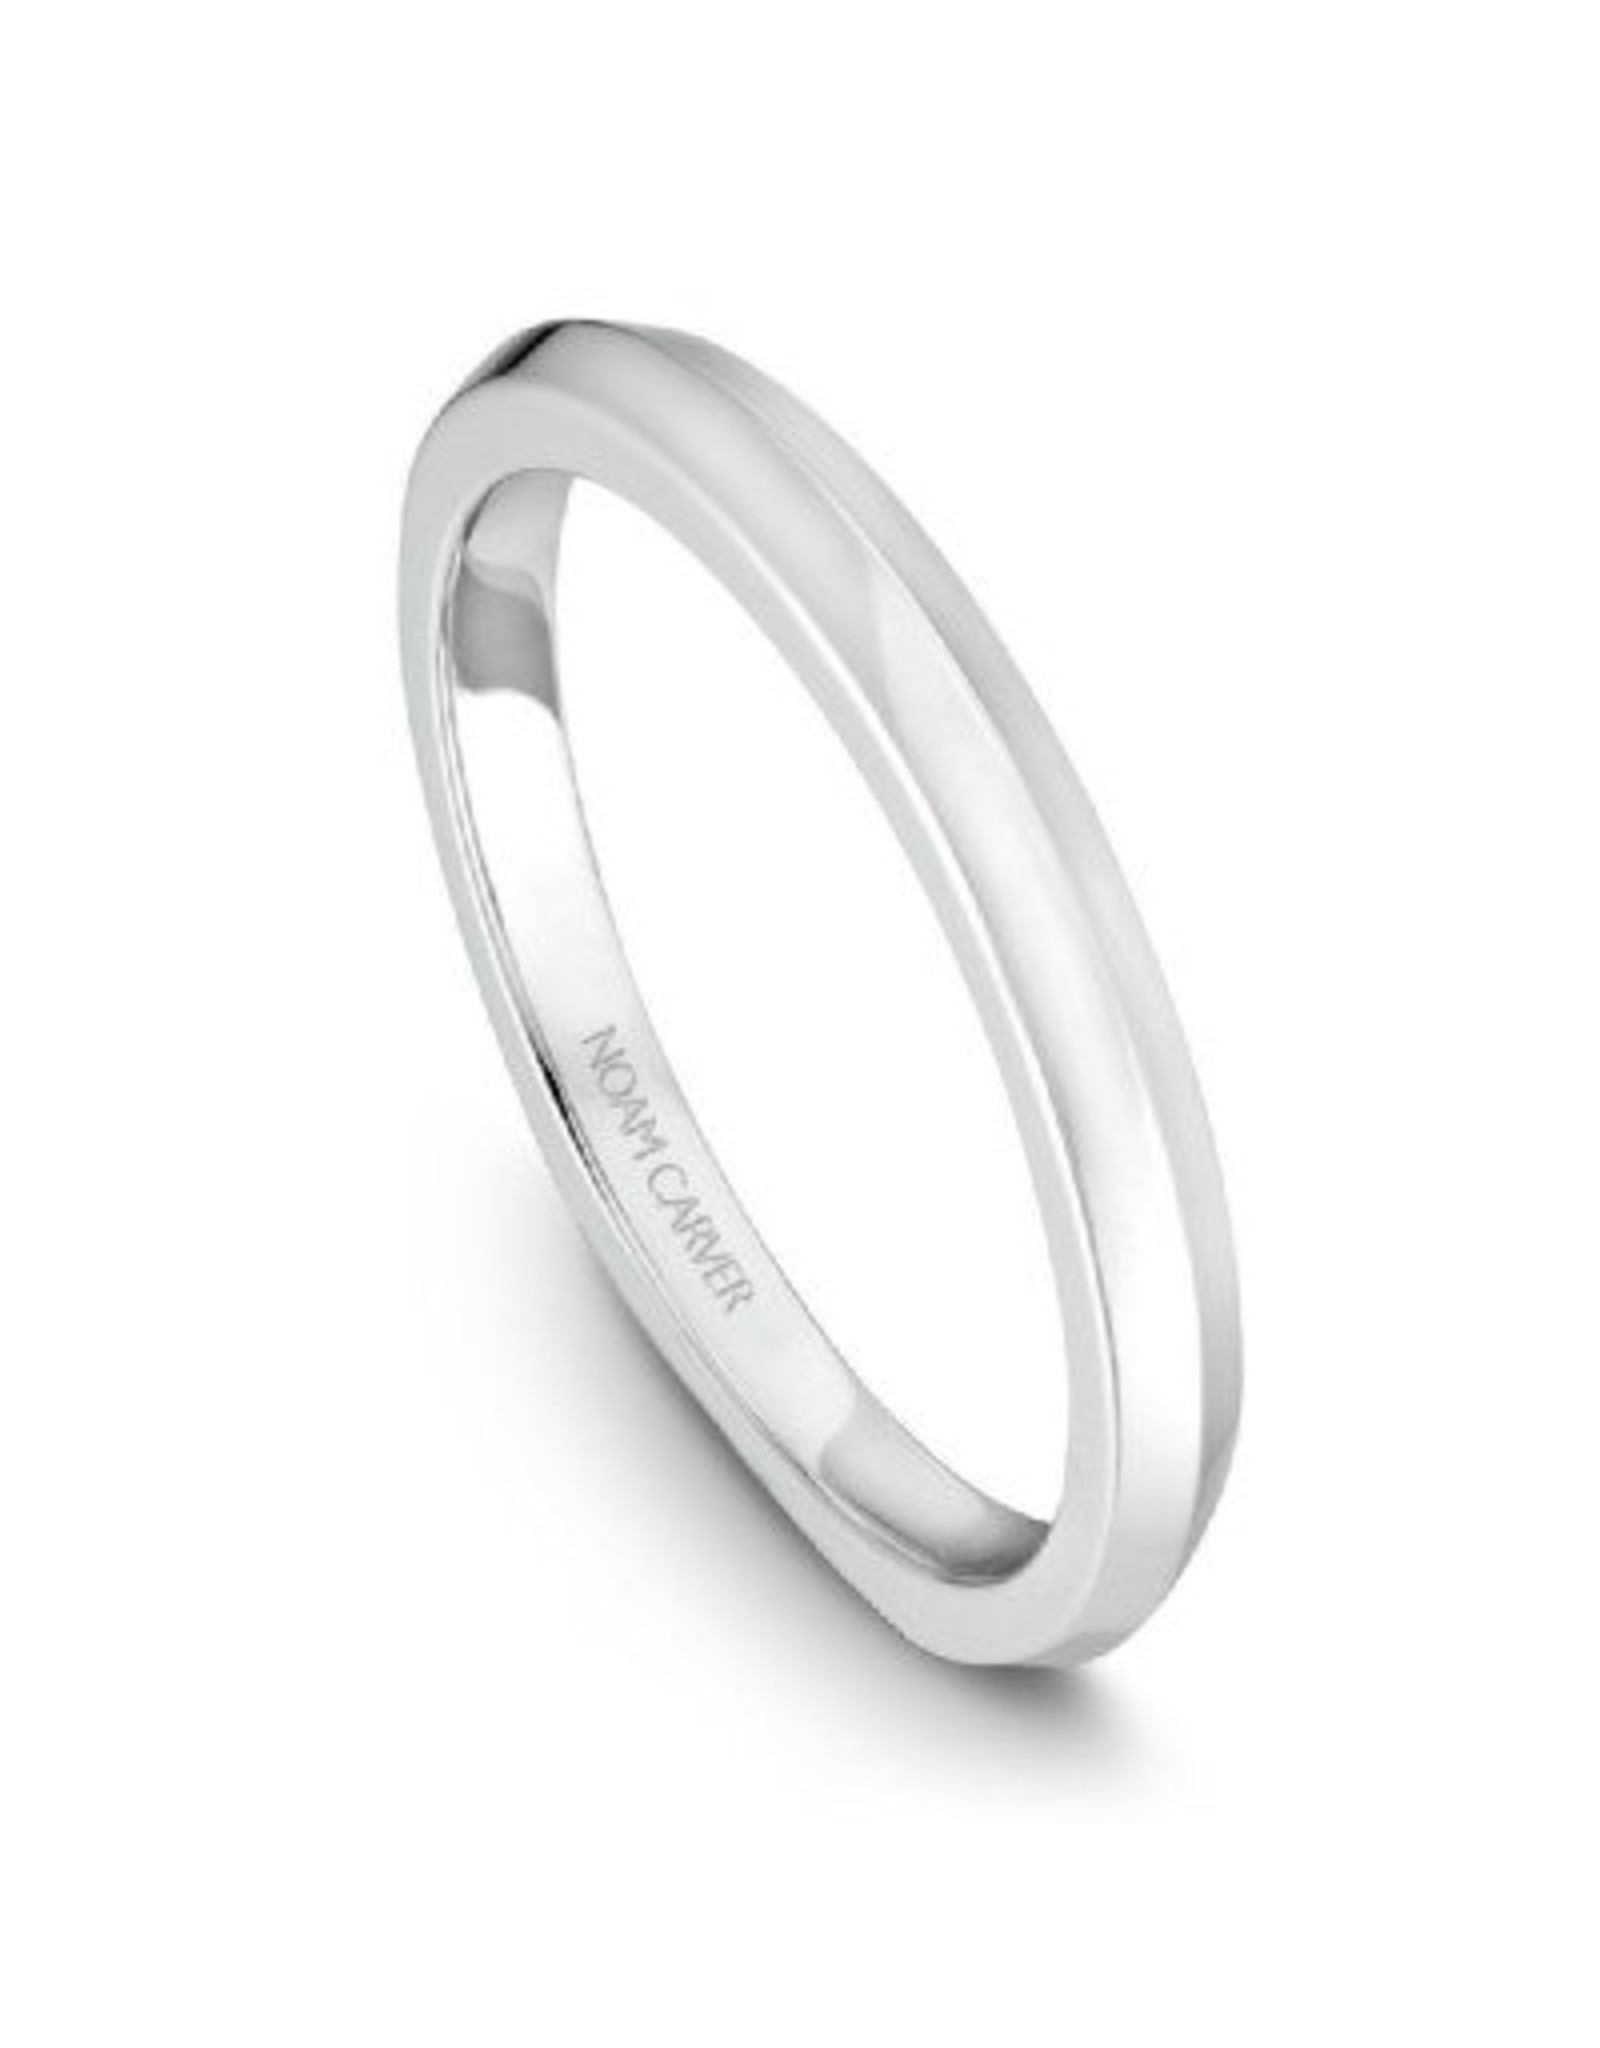 Noam Carver B040-01A Matching Band by Noam Carver 14KW